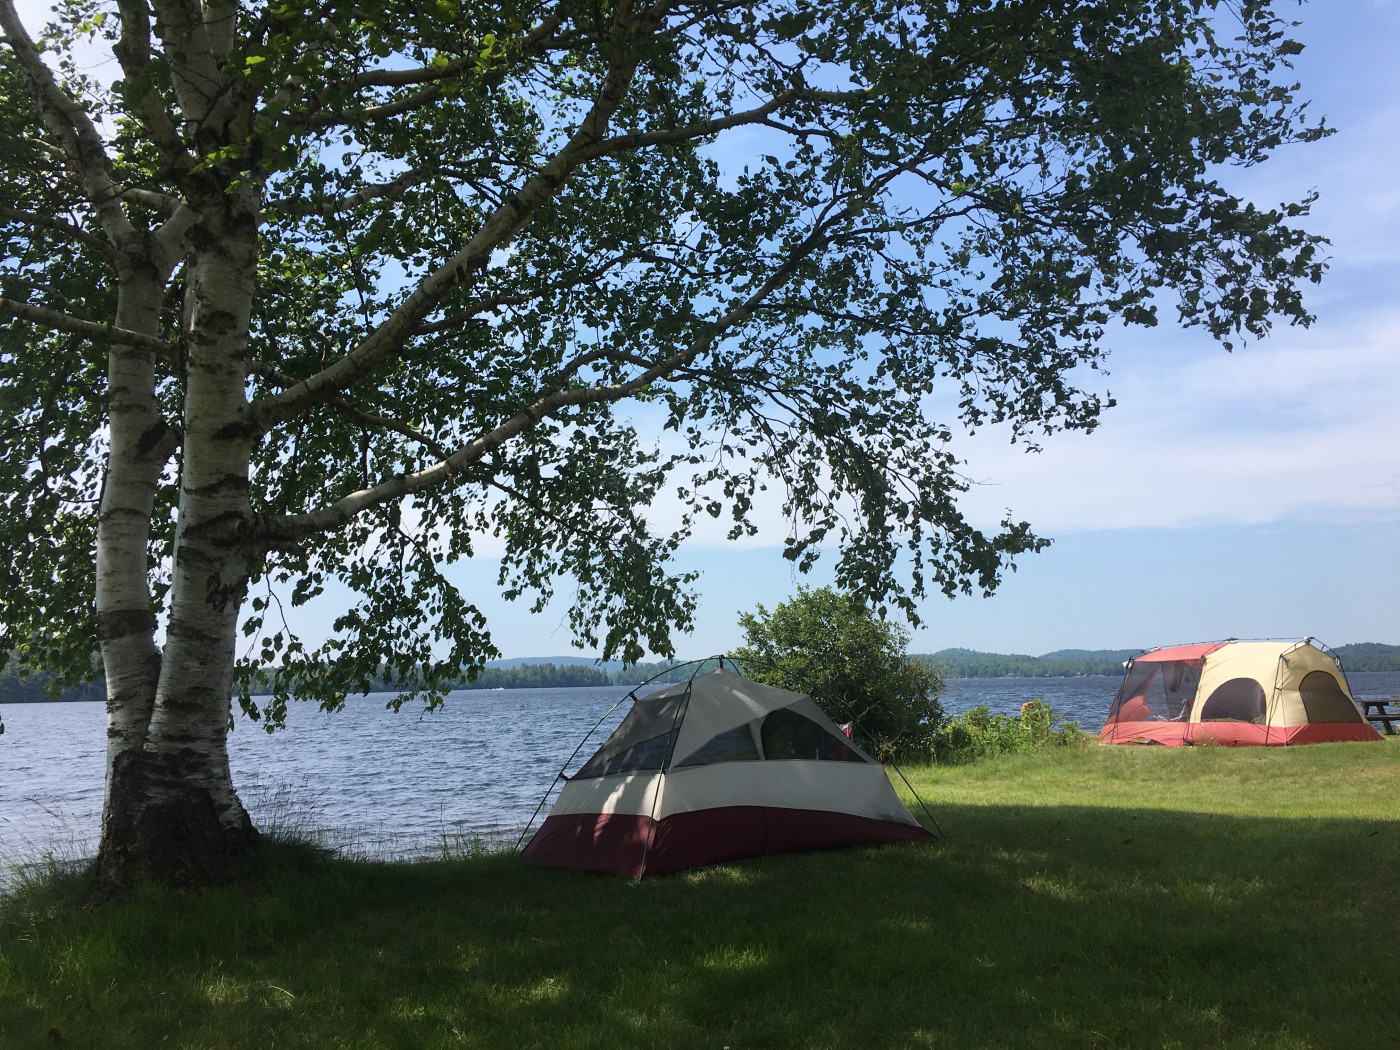 Campsites at Tioga Point, Racquette Lake